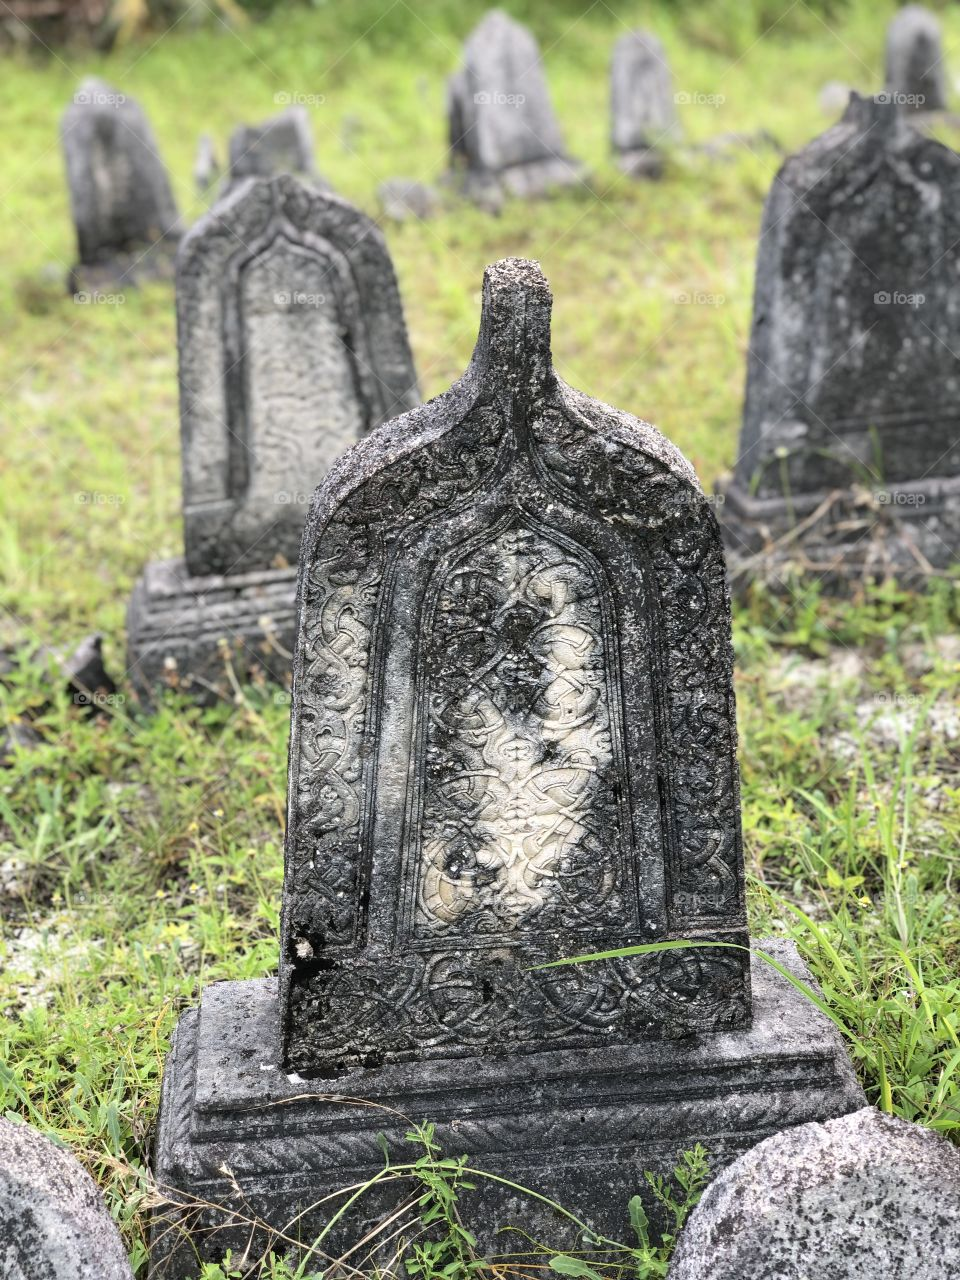 Nice stone curving by locals of #Hdh nolhivaramfaru @6_41_50_N_73_07_15_E found in an old cemetery believe to be more than 250years.